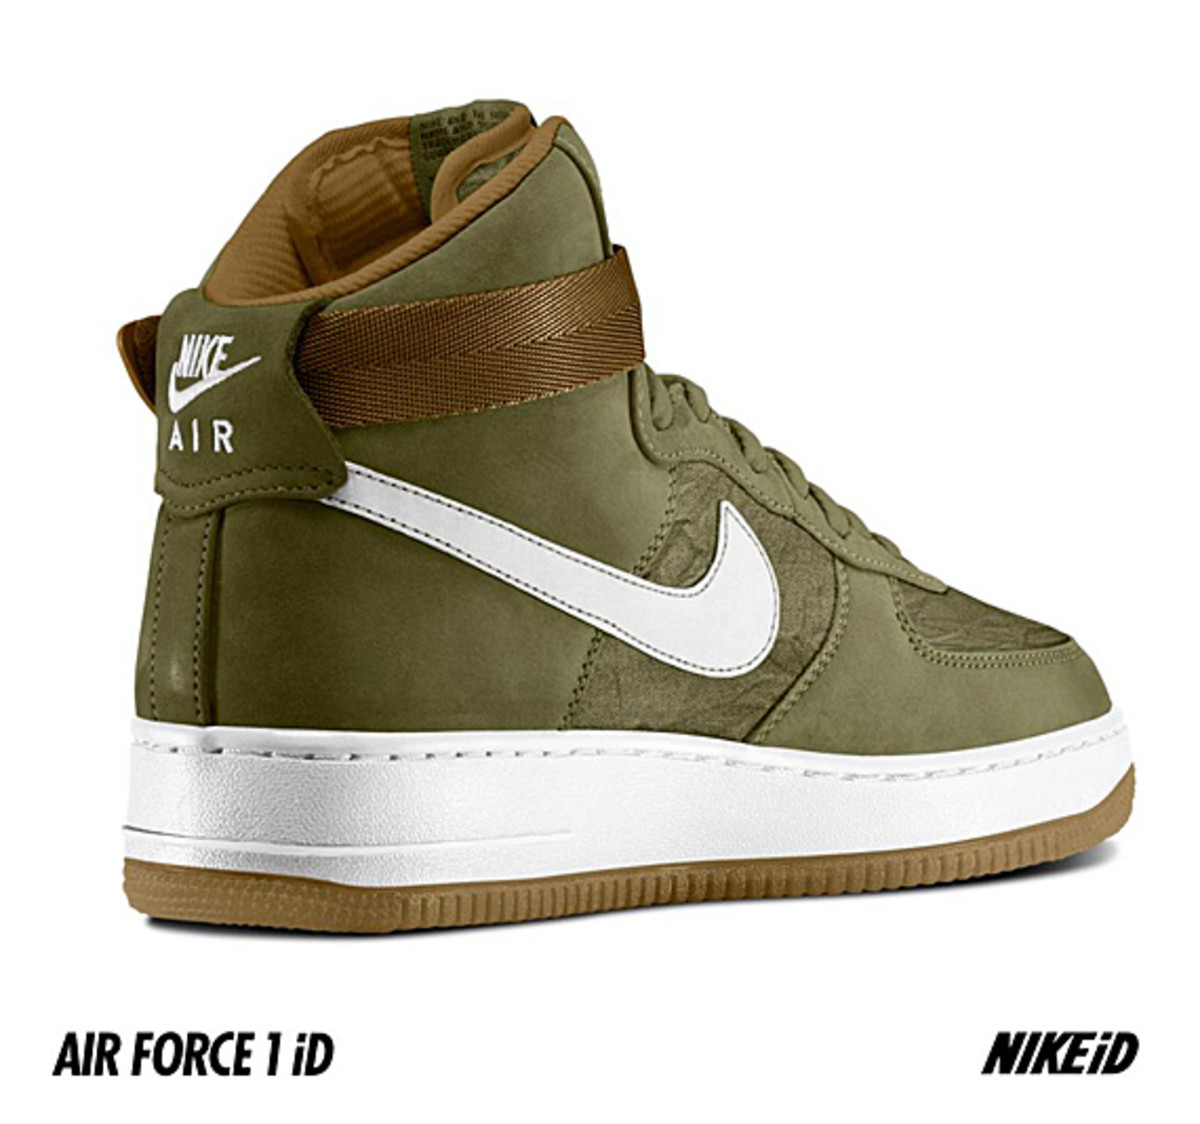 nikeid-air-force-1-id-10th-mountain-division-09